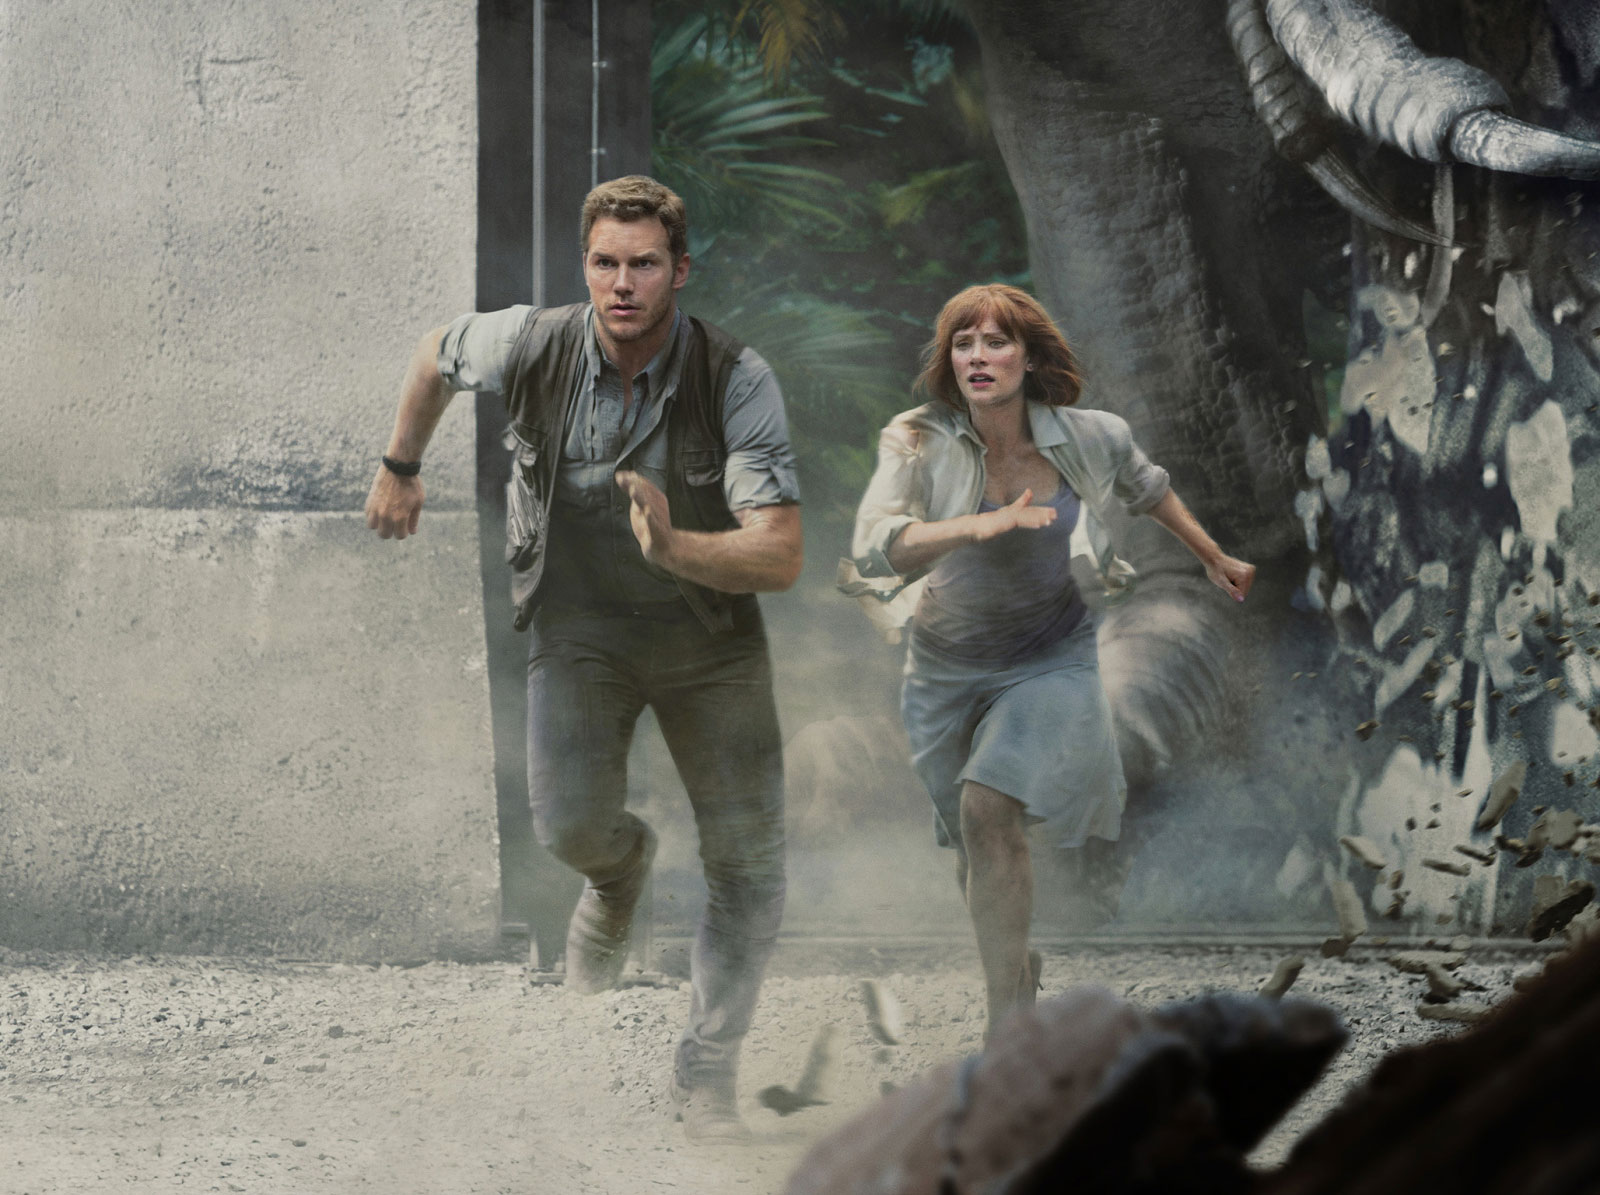 Chris Pratt: Jurassic World 3 will be the Avengers: Endgame of Jurassic Park films